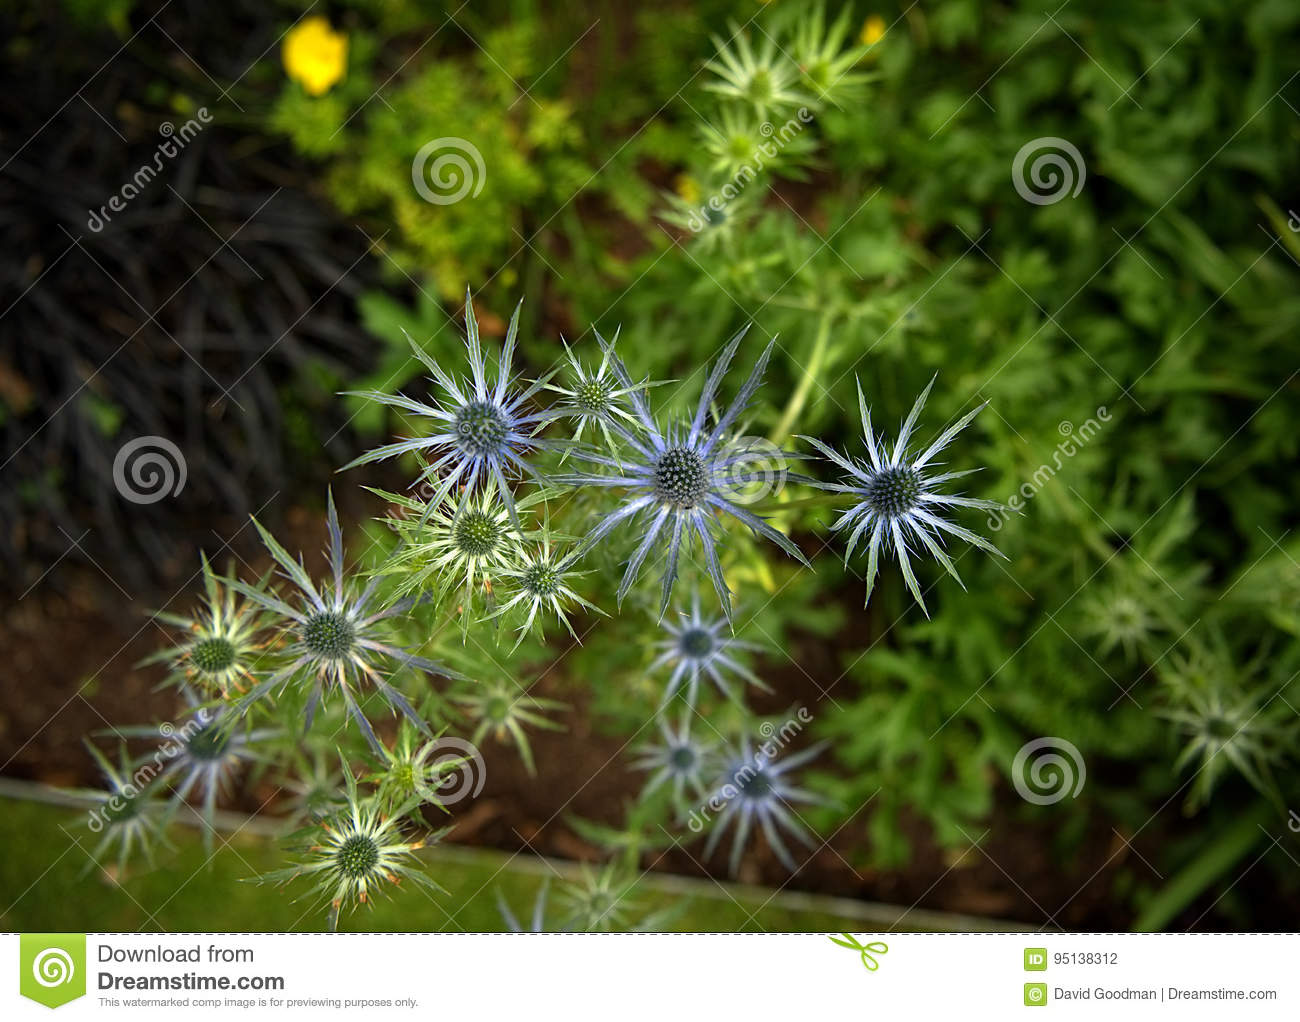 Flower Shaped Like A Star Stock Photo Image Of Plant 95138312